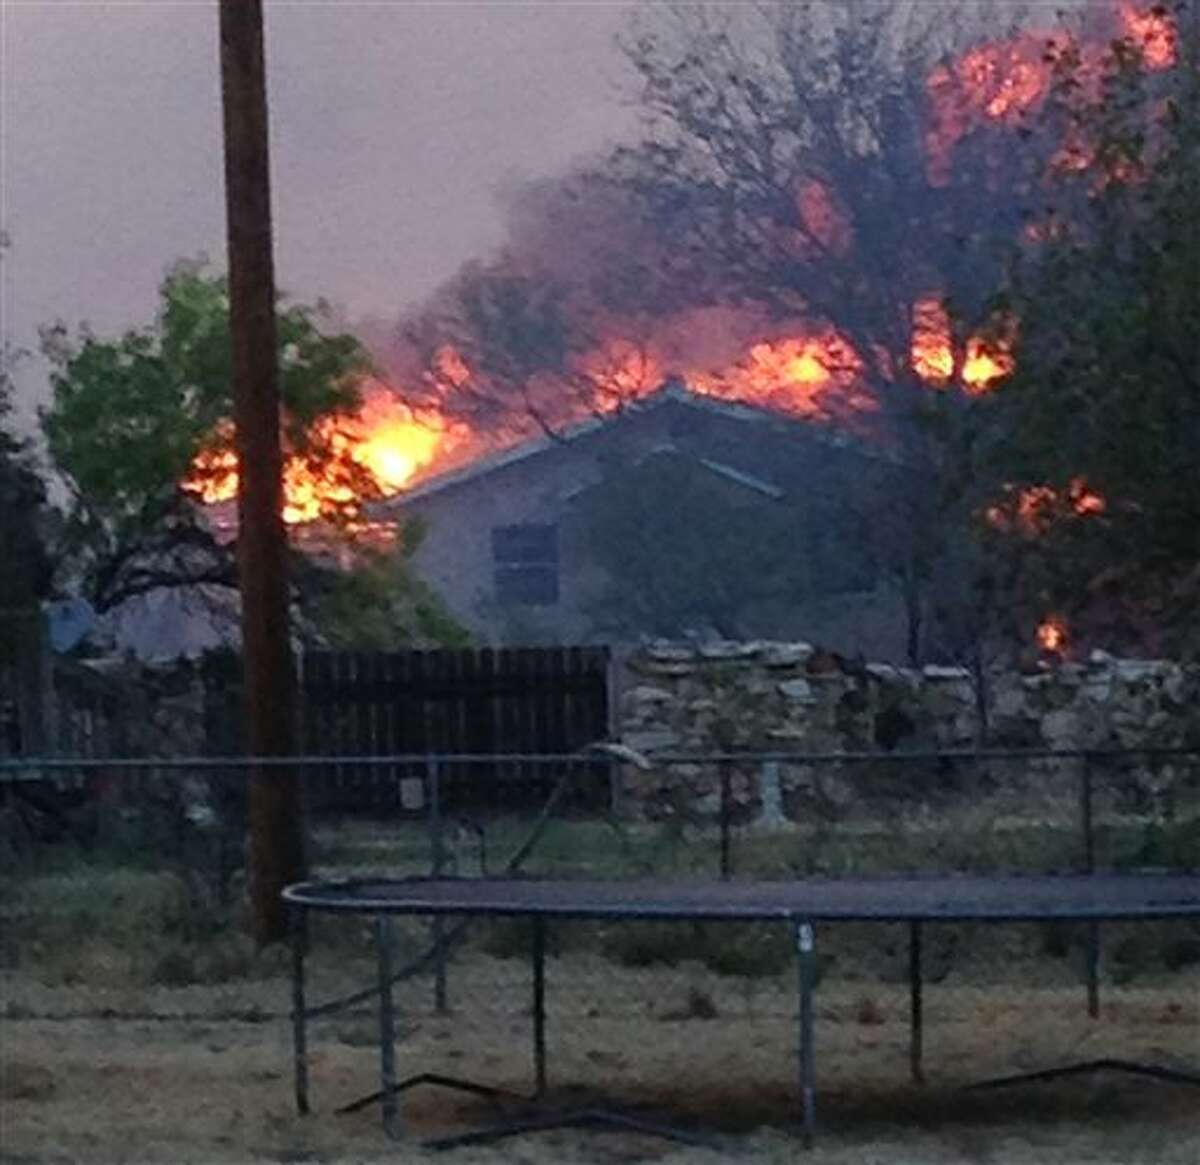 In this Sunday, May 11, 2014 photo provided by the Texas Department of Public Safety, a wildfire burns near Fritch, Texas. The wildfire has led to evacuations and road closures and has destroyed dozens of homes. (AP Photo/Texas Department of Public Safety, Chris Ray)